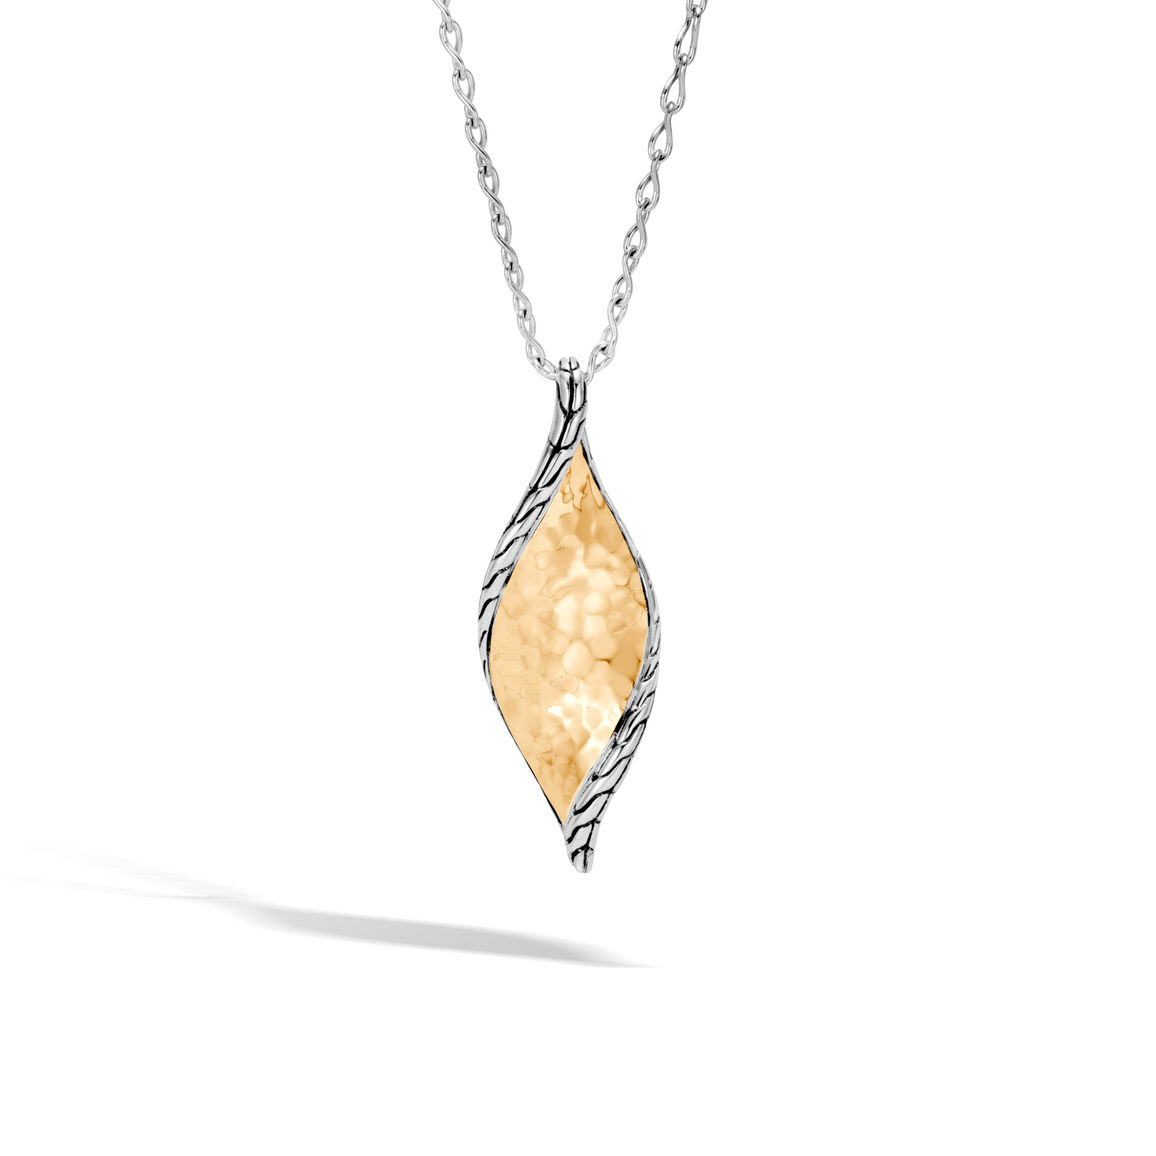 Classic Chain Wave Pendant Necklace, Silver, Hammered 18K